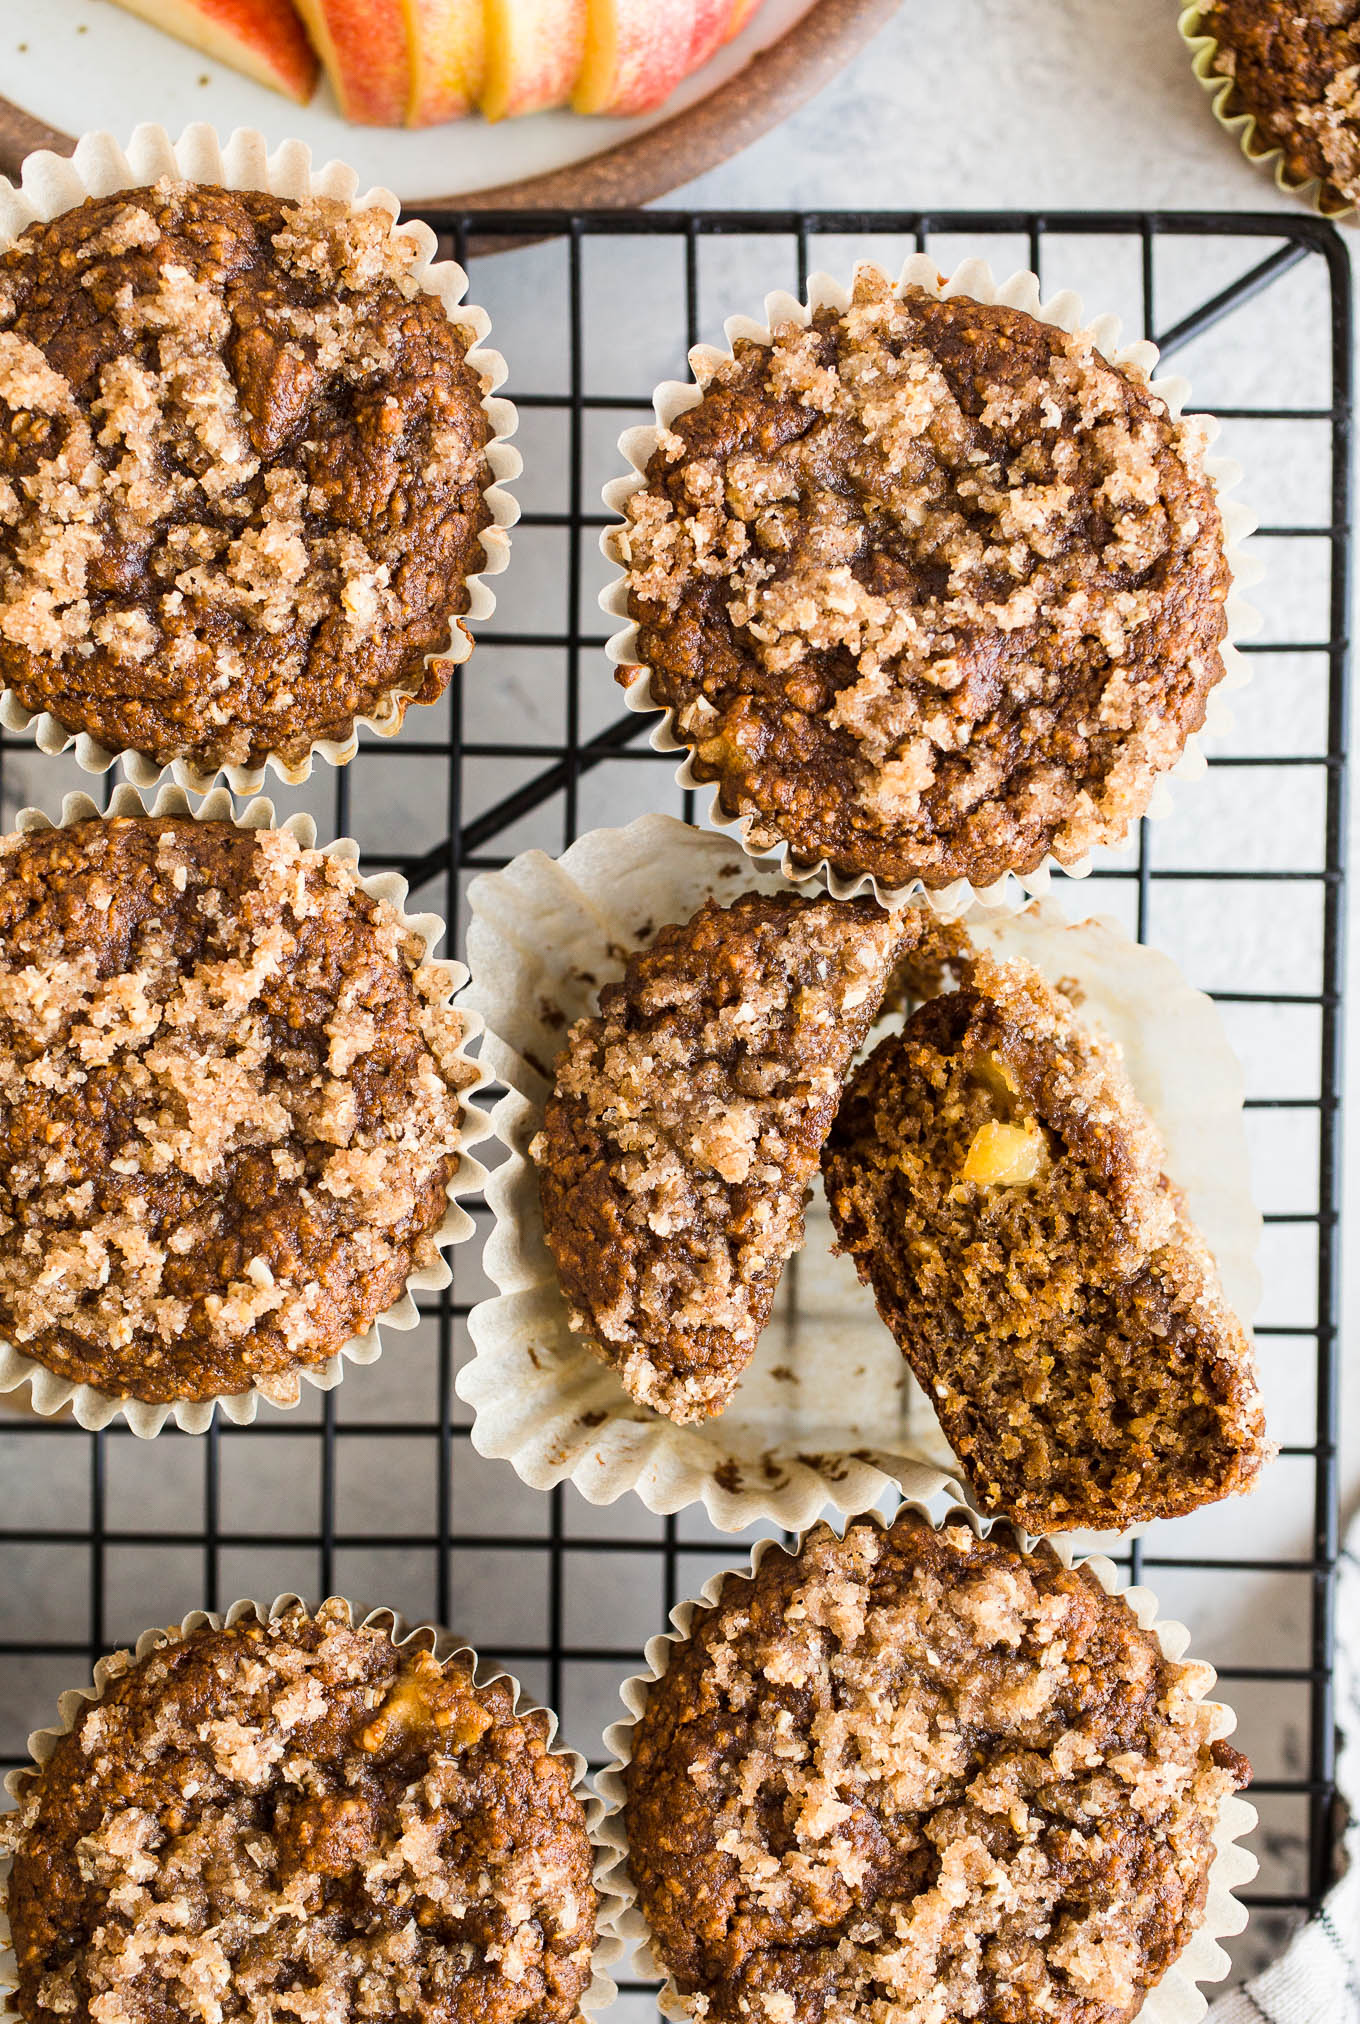 Gluten-Free Apple Crumb Muffins are made with whole grain gluten-free oat flour, almond flour, applesauce, and coconut sugar topped with a cinnamon sugar crumble. Dairy-free, vegan.